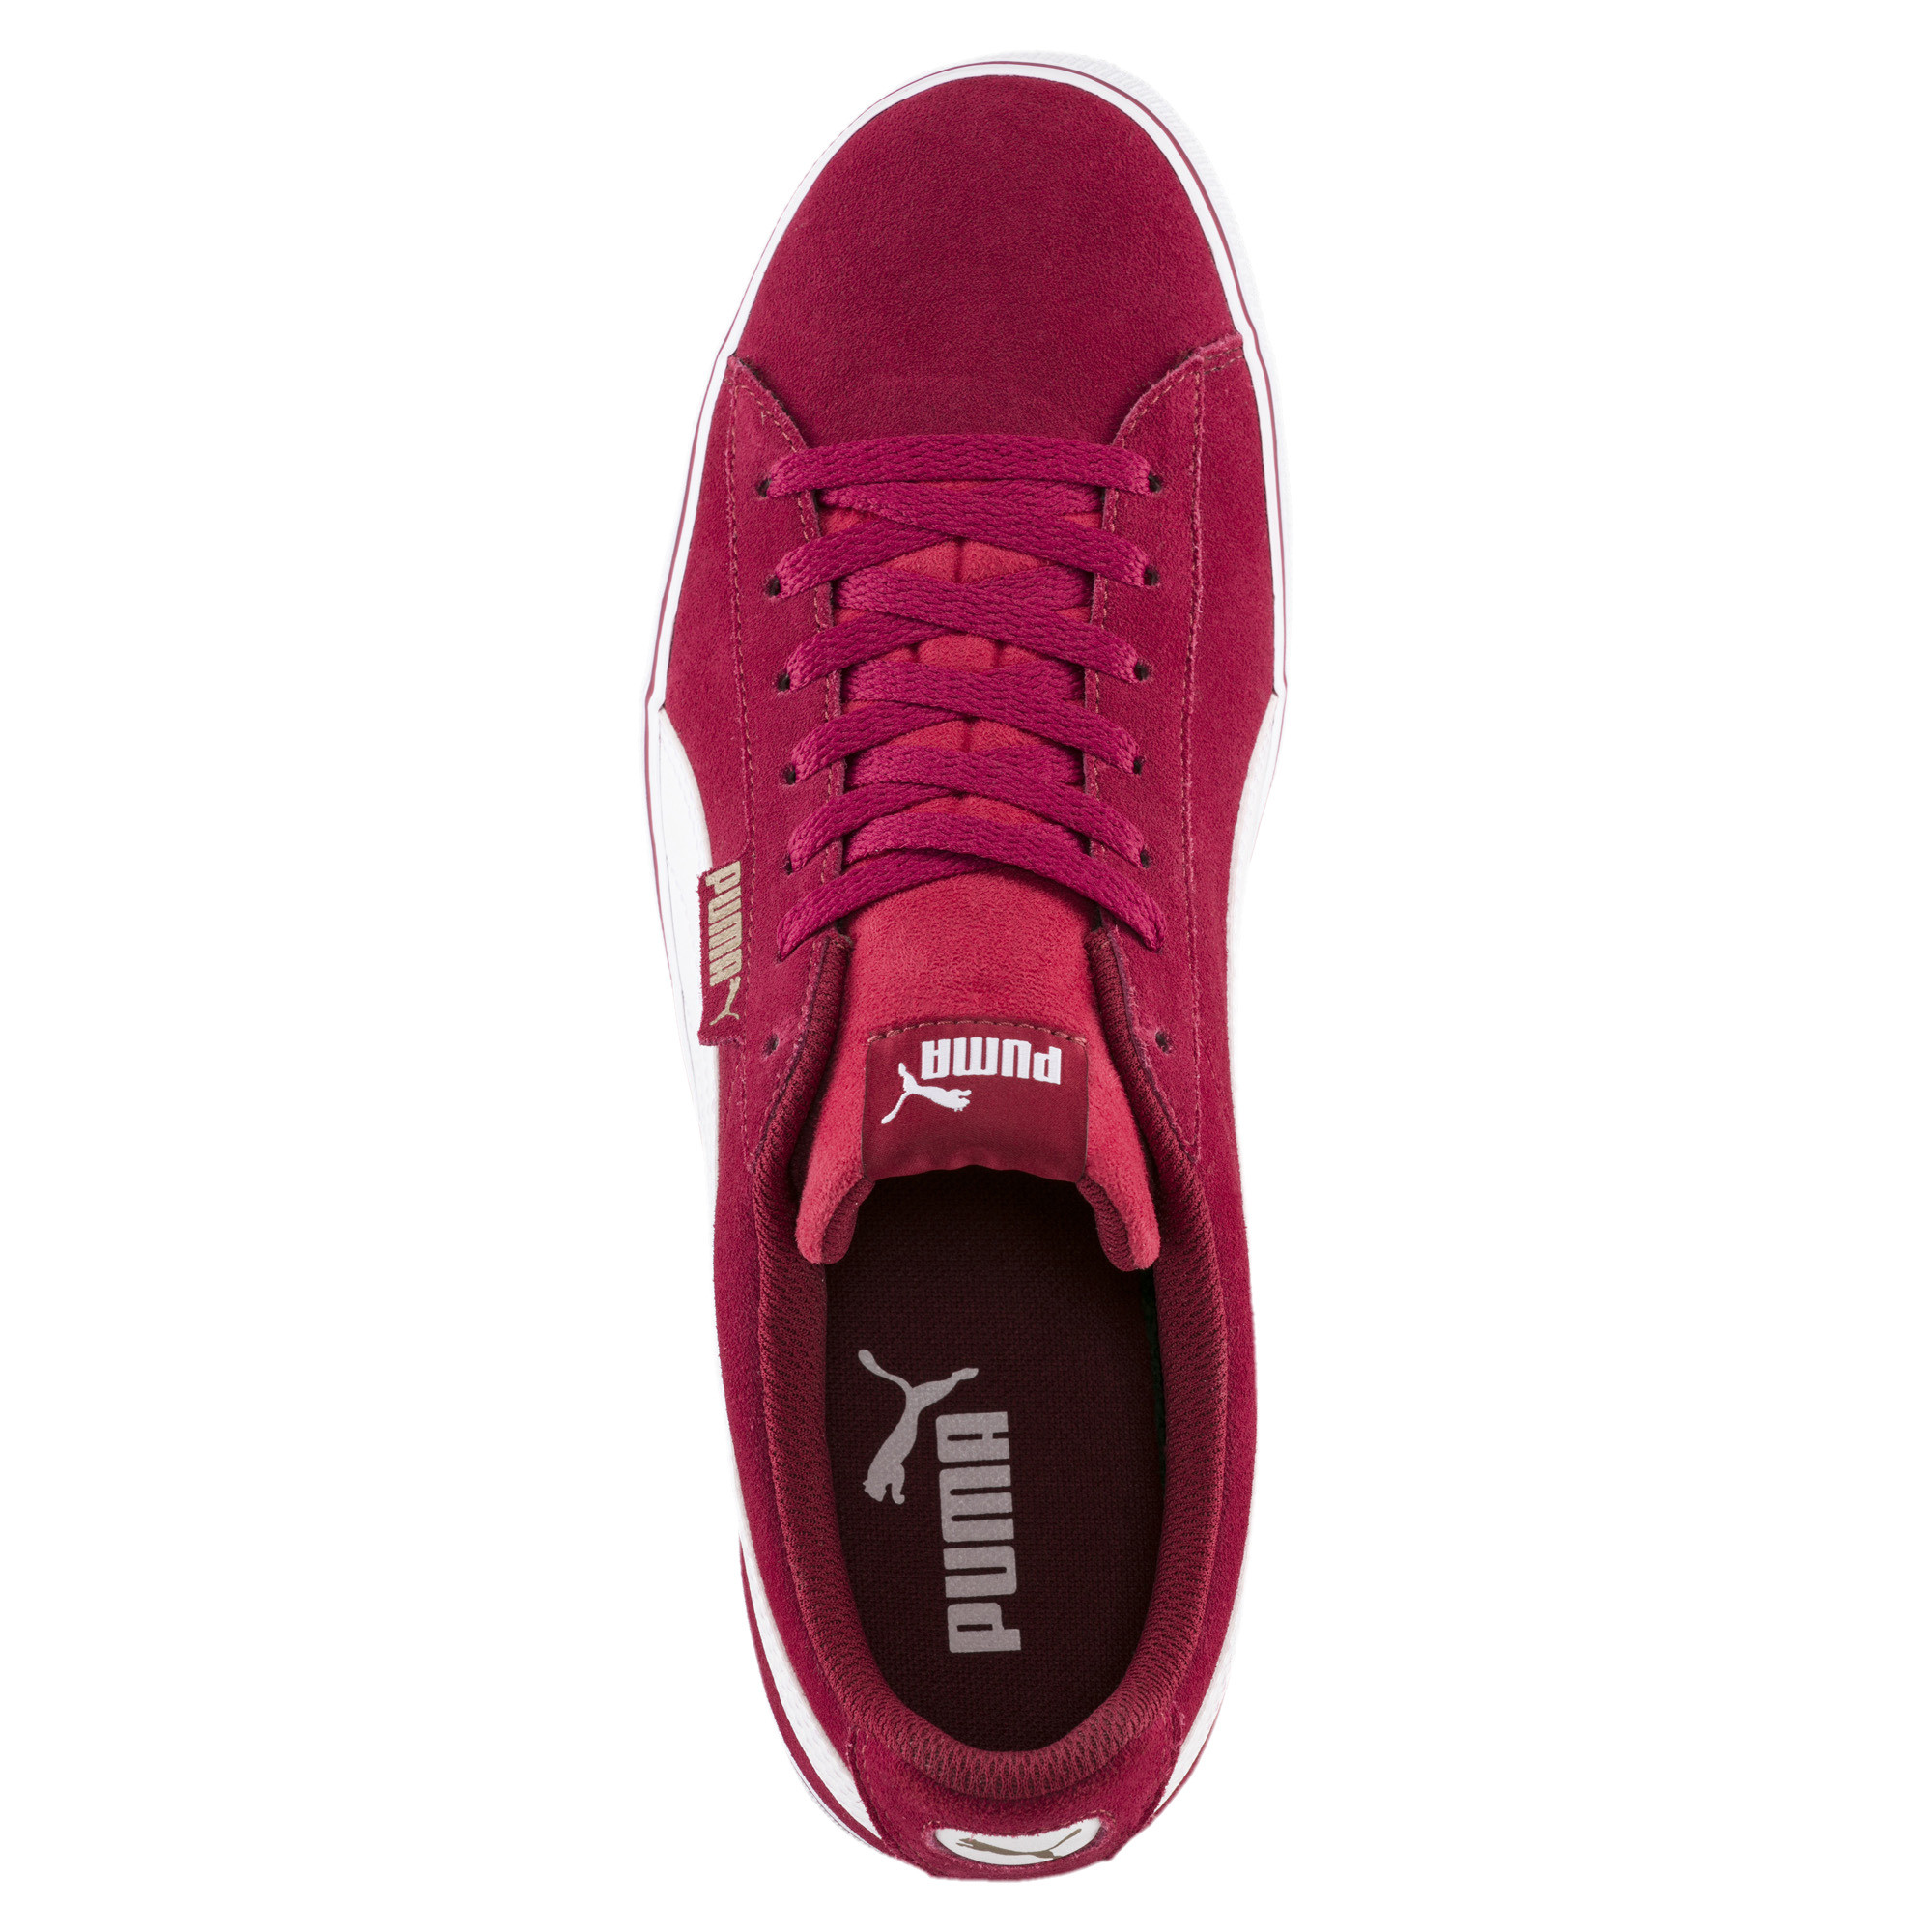 PUMA-Puma-1948-Vulc-Men-s-Sneakers-Men-Shoe-Basics thumbnail 6